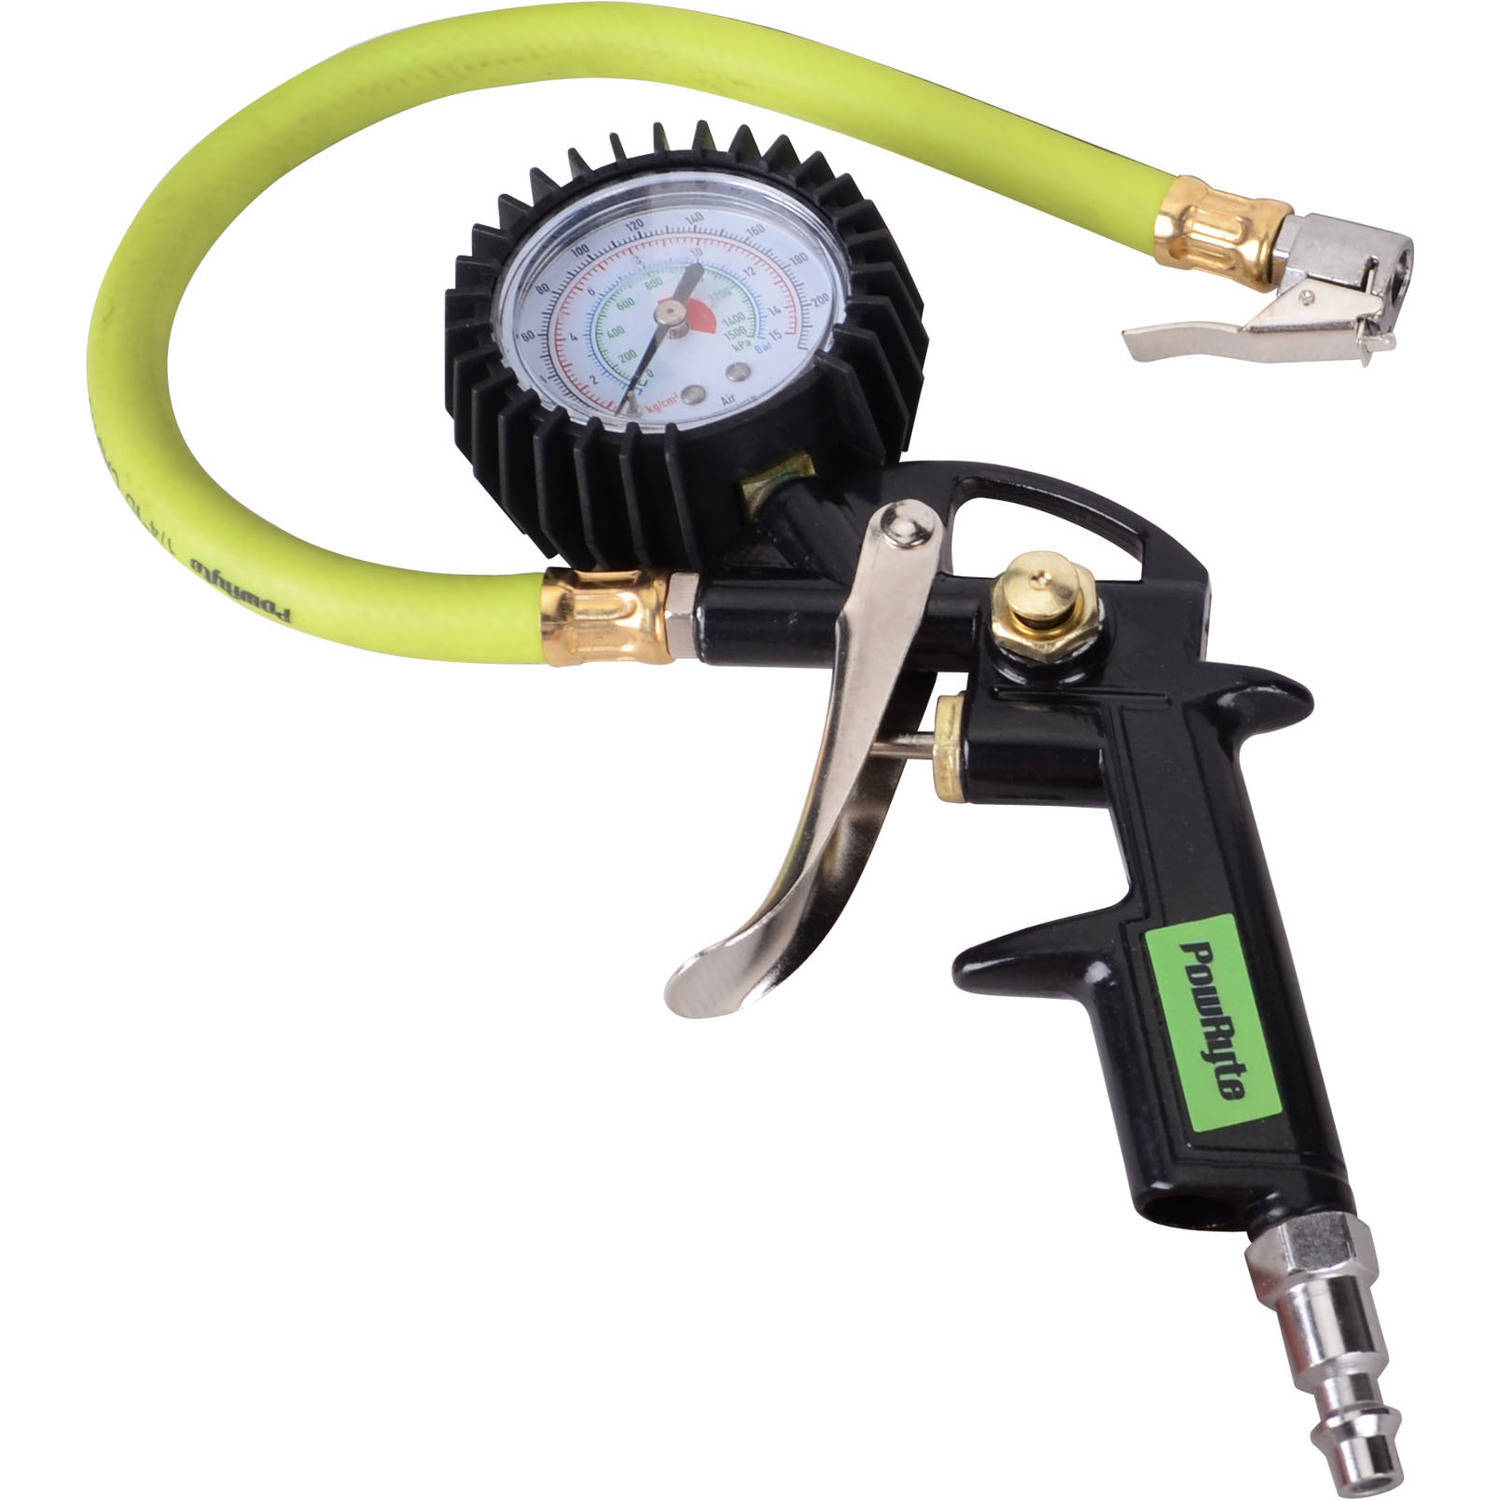 PowRyte Pistol Grip Air Tire Inflator with Gauge 10-220 PSI 5000790